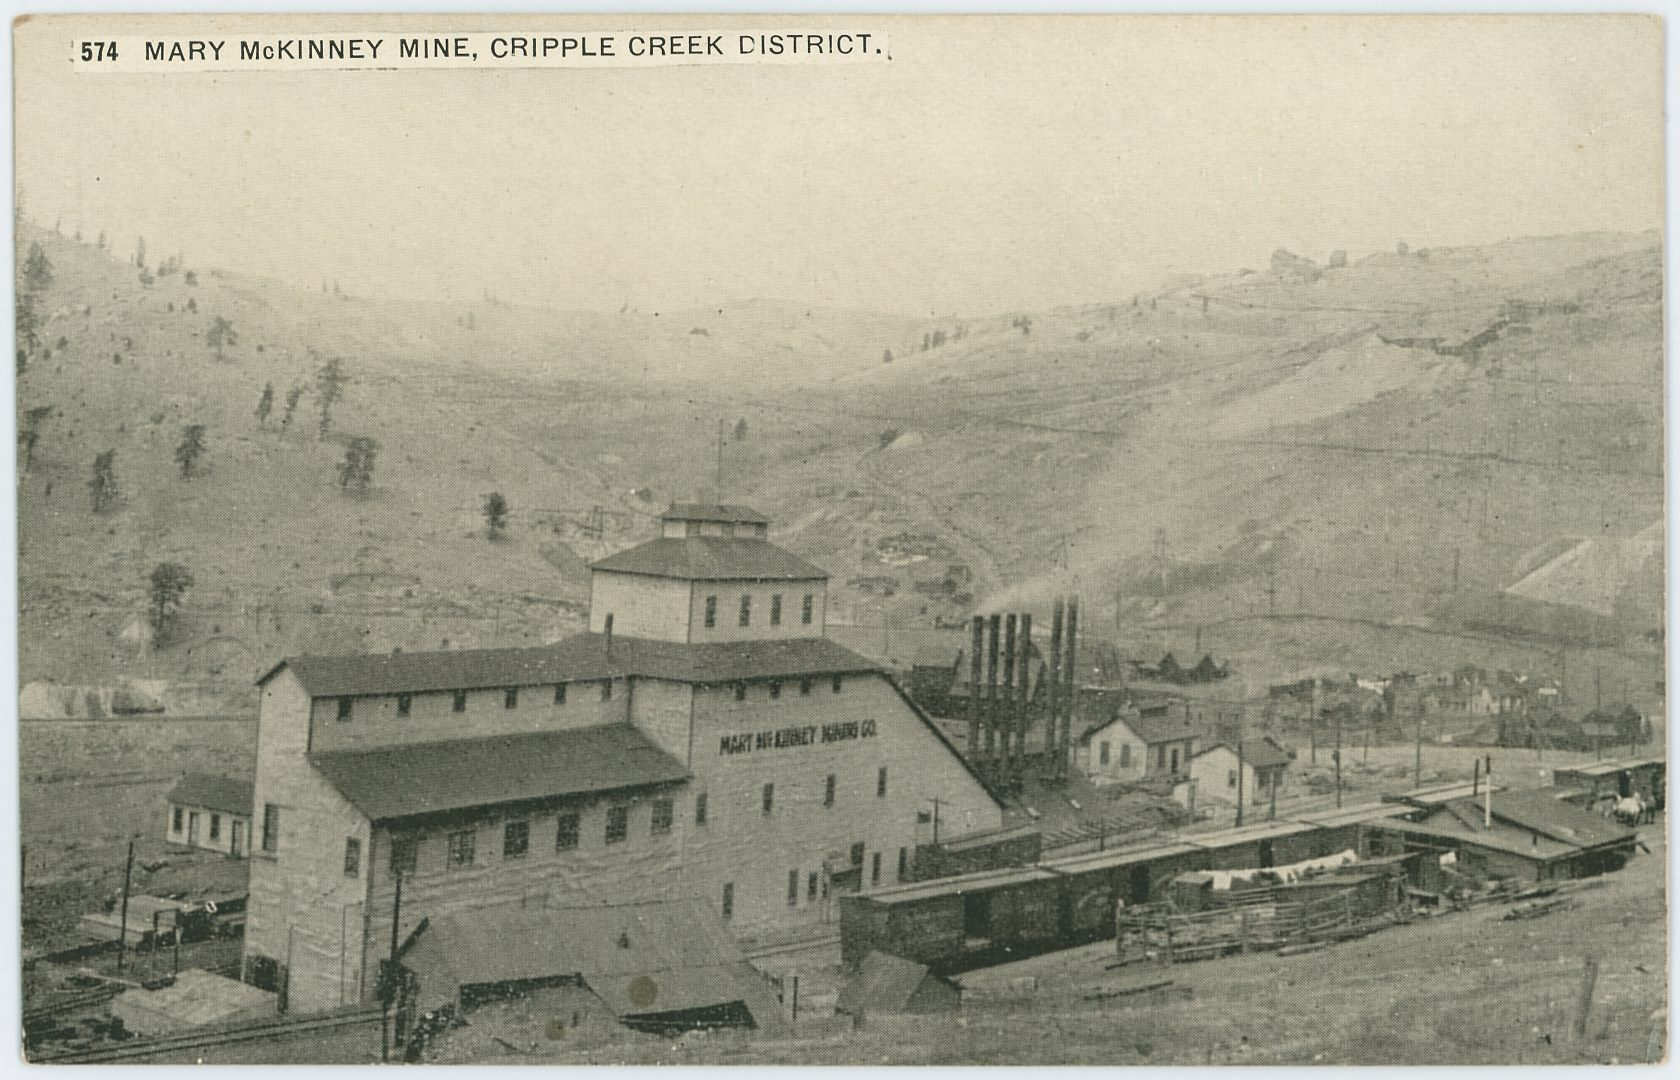 I've seen this image used three times, for this card and another postcard where there are a couple of extra millimeters visible on the right-hand side, plus I've seen it used in a postcard folder.    The view is from the railroad side of the Mary McKinney mine, showing several box cars parked on sidings nearby and at the mine itself. It also shows part of Anaconda at right-hand side about 1/3 up from bottom, the part that survived the 1904 fire, as I see no signs of structures at left side of image, and I believe there should been visible something there if the town was still there.    The tracks in the foreground belong to the Midland Terminal, but the Mary McKinney mine was once served by dual gauge as the F. & C.C was also having a spur to the mine, entering in from left-hand side, running parallel with the Shaft House to serve that and the coal bins at the power plant seen with all those smokestacks to the right of the shaft-house.    Behind the smokestacks of the Power House of the Mary McKinney you can see the Ore House of the Anaconda Mine, located down by the F. & C.C. yard in Anaconda, but image is too bad to really make out any details. Which is sad, as up on Gold Hill seen in the background, there is seen the Shaft House of the Anchoria-Leland about 1/4 in from right-hand side and about same from top, with the Ore-House and trestle of the Lexington Mine seen just to the right of the Anchoria-Leland.    Or even more sad, there is visible a mill on the hill side above the Low Line grade, seen about  1/3 down from top and 1/7 in from right-hand side, a mill I believe might be known as Anaconda Mill, but I might be mistaken where that mill was located as info been a little scarce, but it fit the location of west slope Gold Hill.